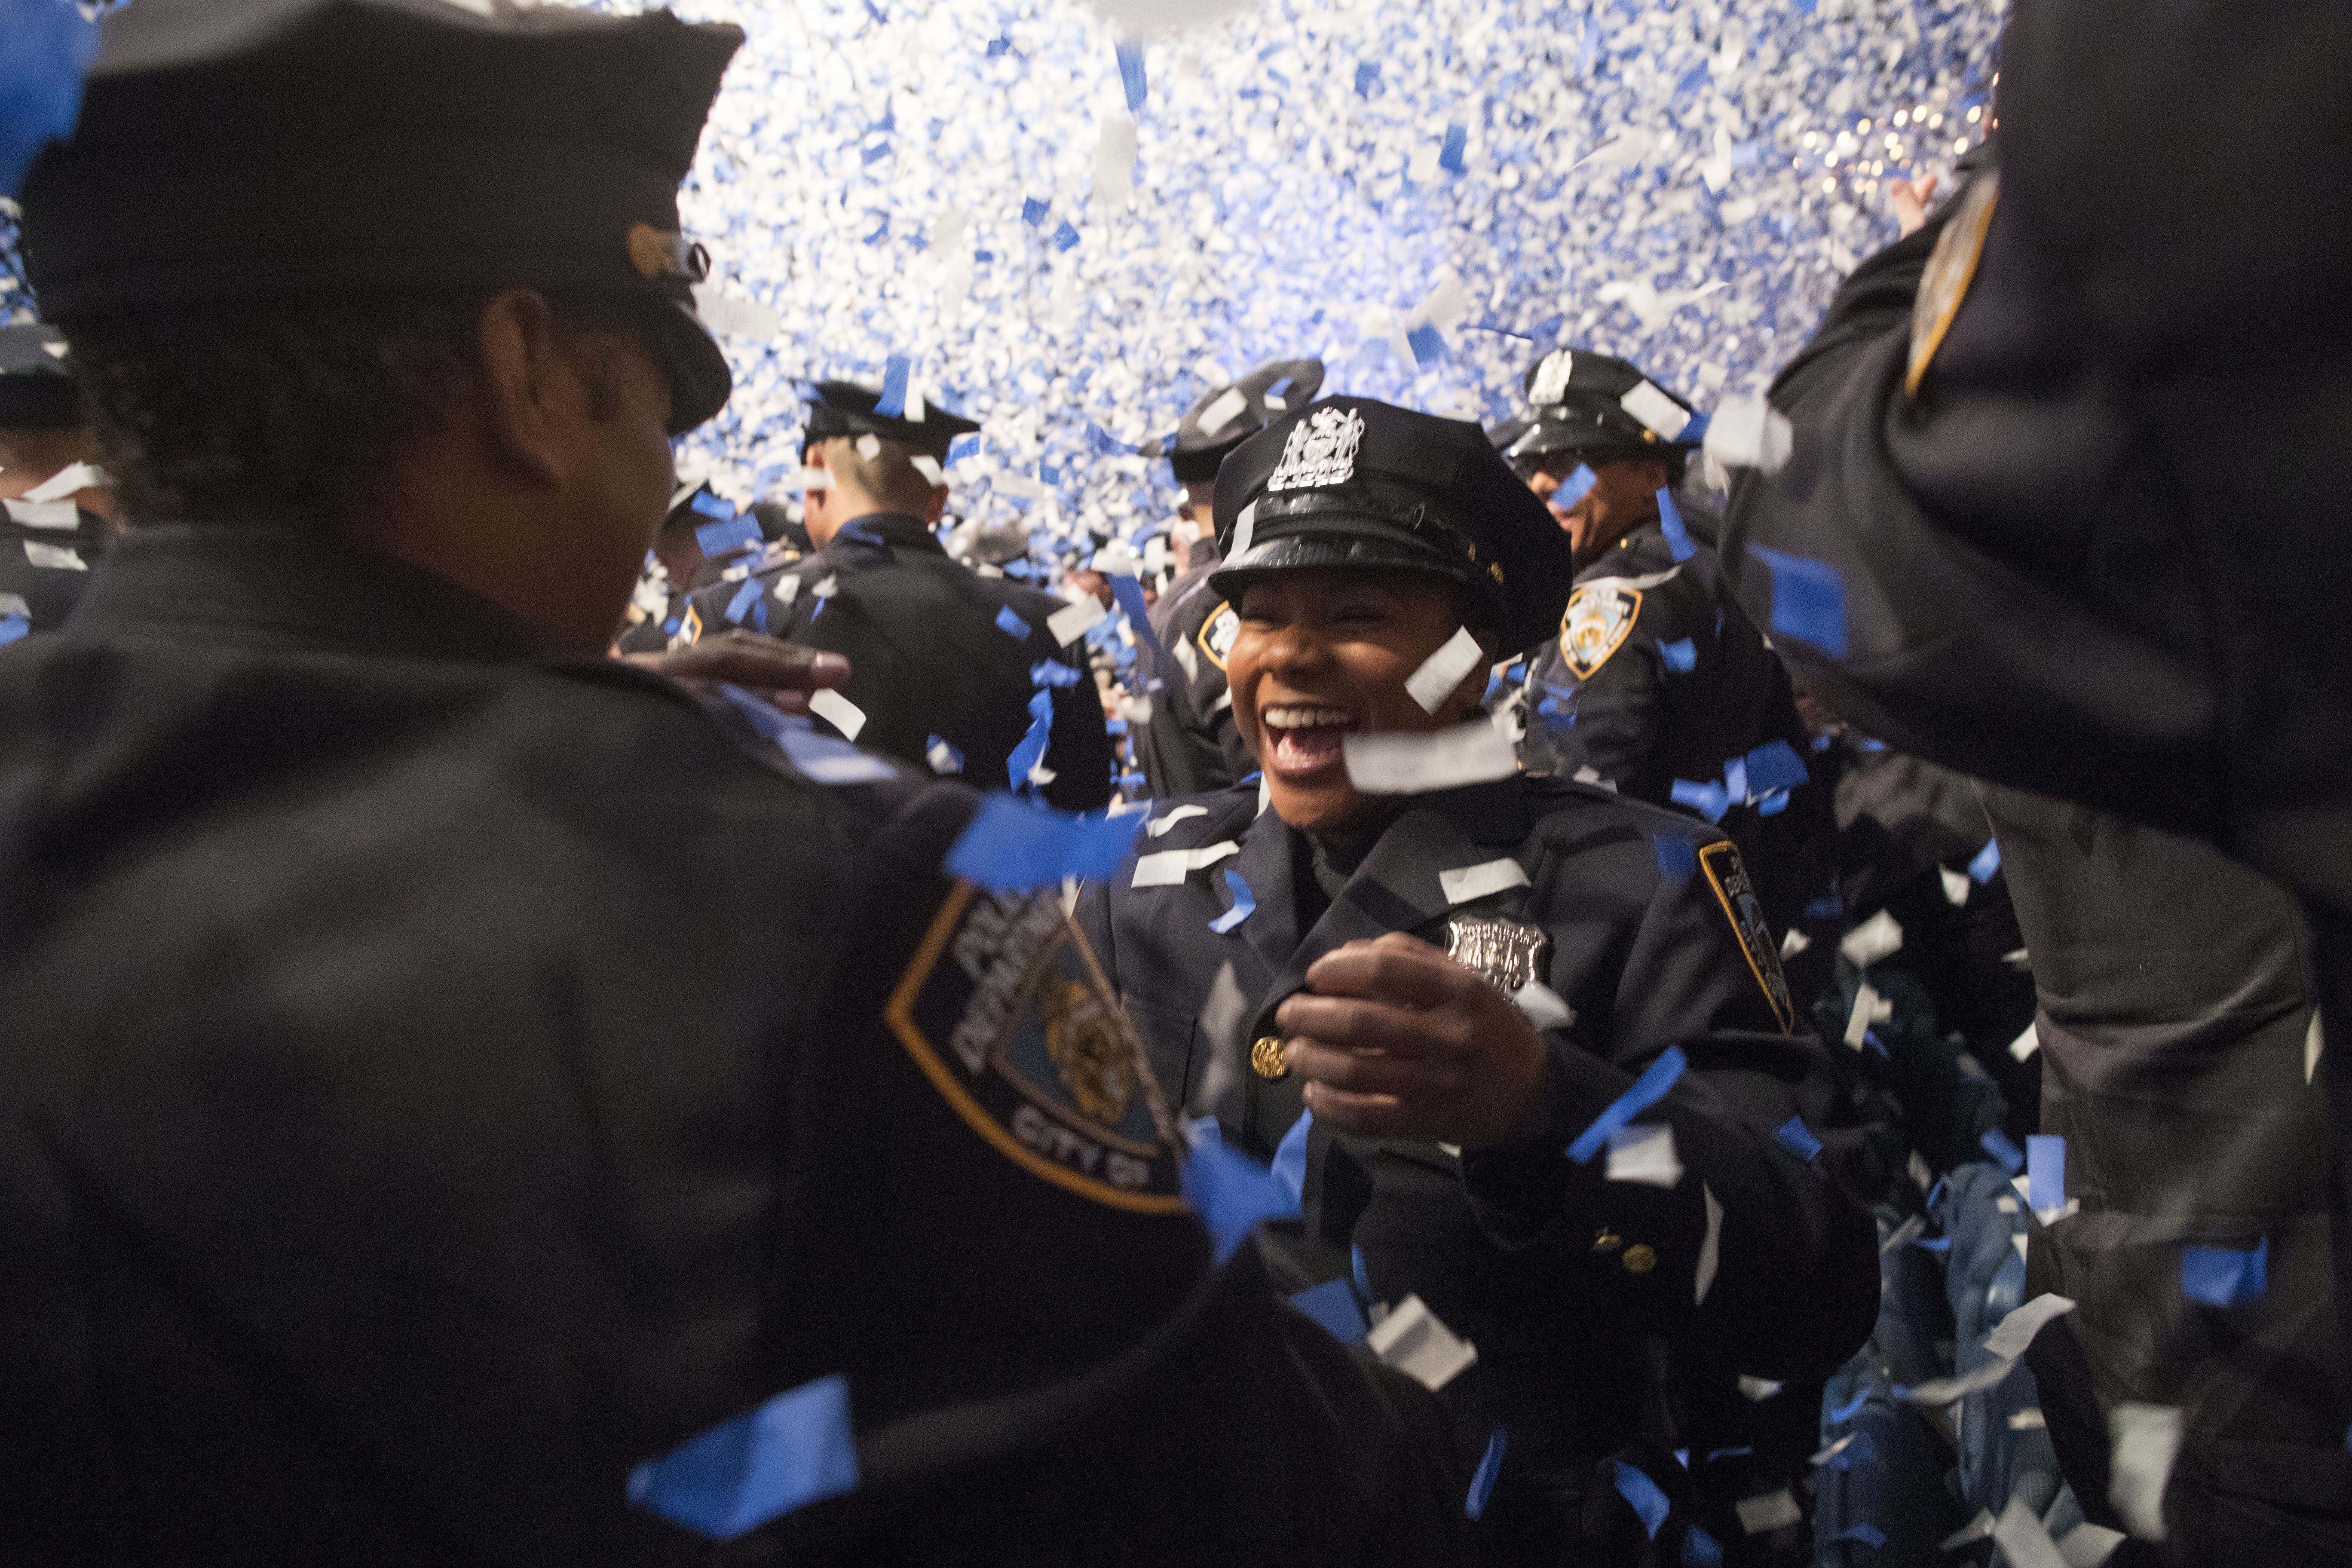 The newest members of the New York City police officers hug during their graduation ceremony, Thursday, March 30, 2017, in New York. Over 600 men and women took the oath of office and pledged to protect the people of New York City. (AP Photo/Mary Altaffer)